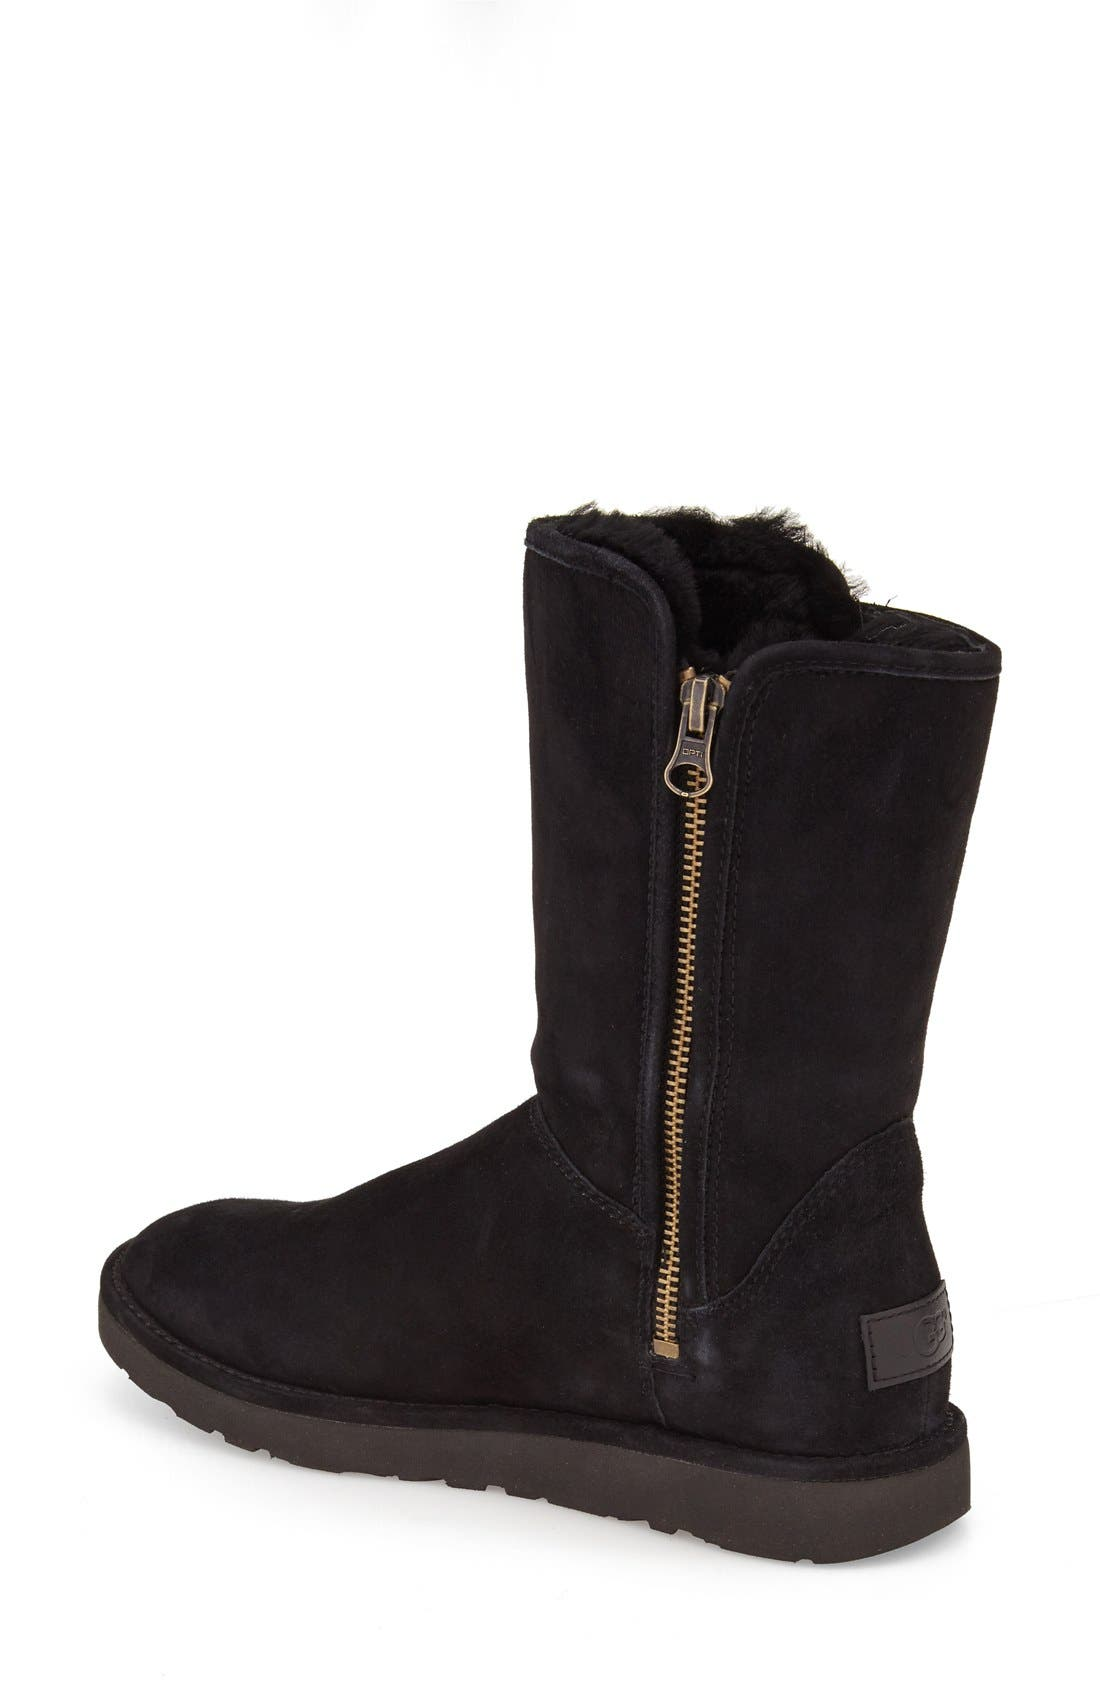 Abree II Short Boot,                             Alternate thumbnail 2, color,                             Nero Suede